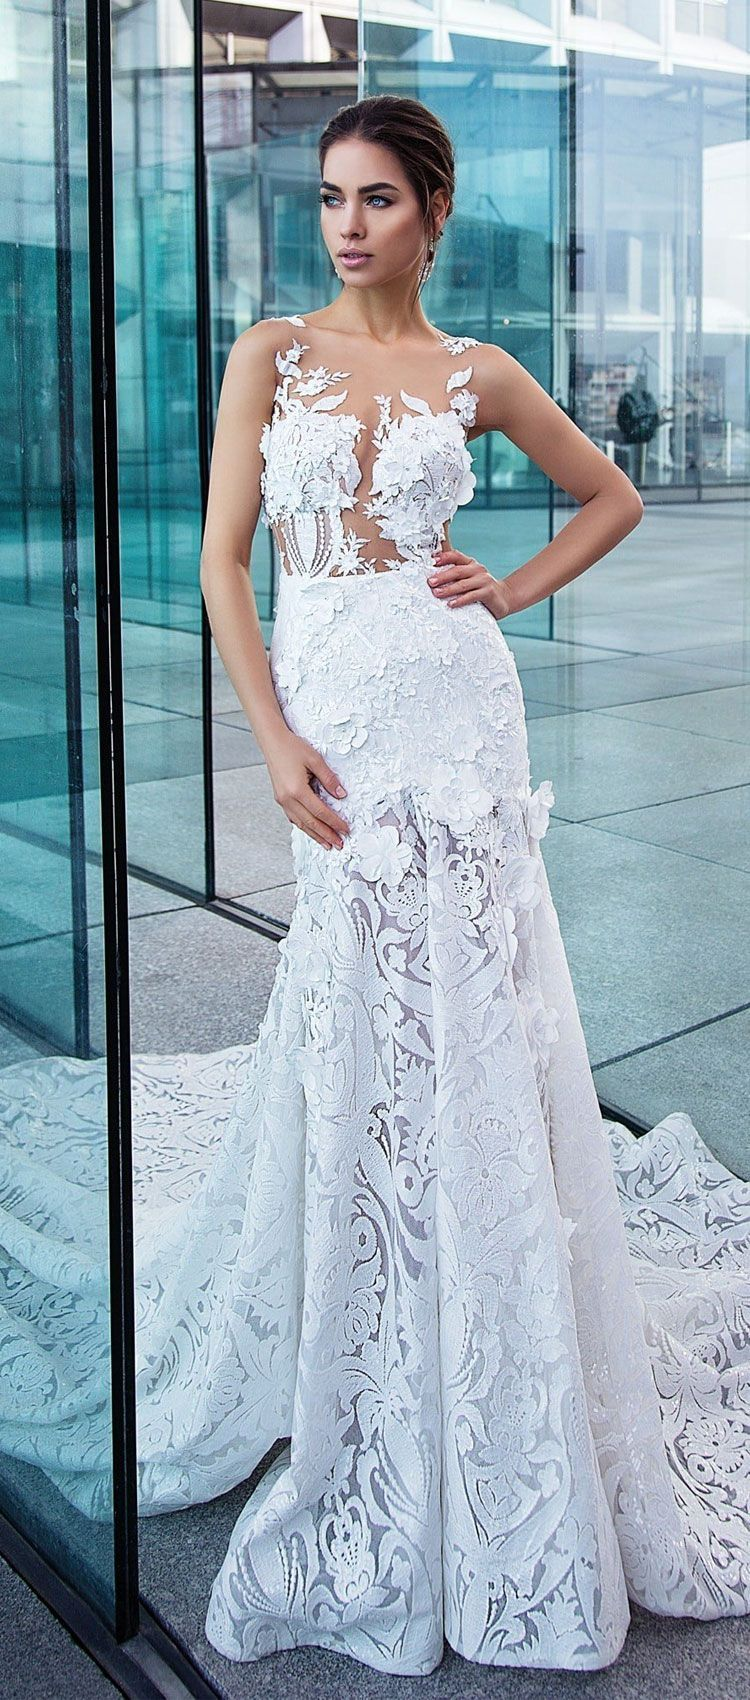 Lorenzo Rossi Divine Affection Bridal Collection | Chapel train ...